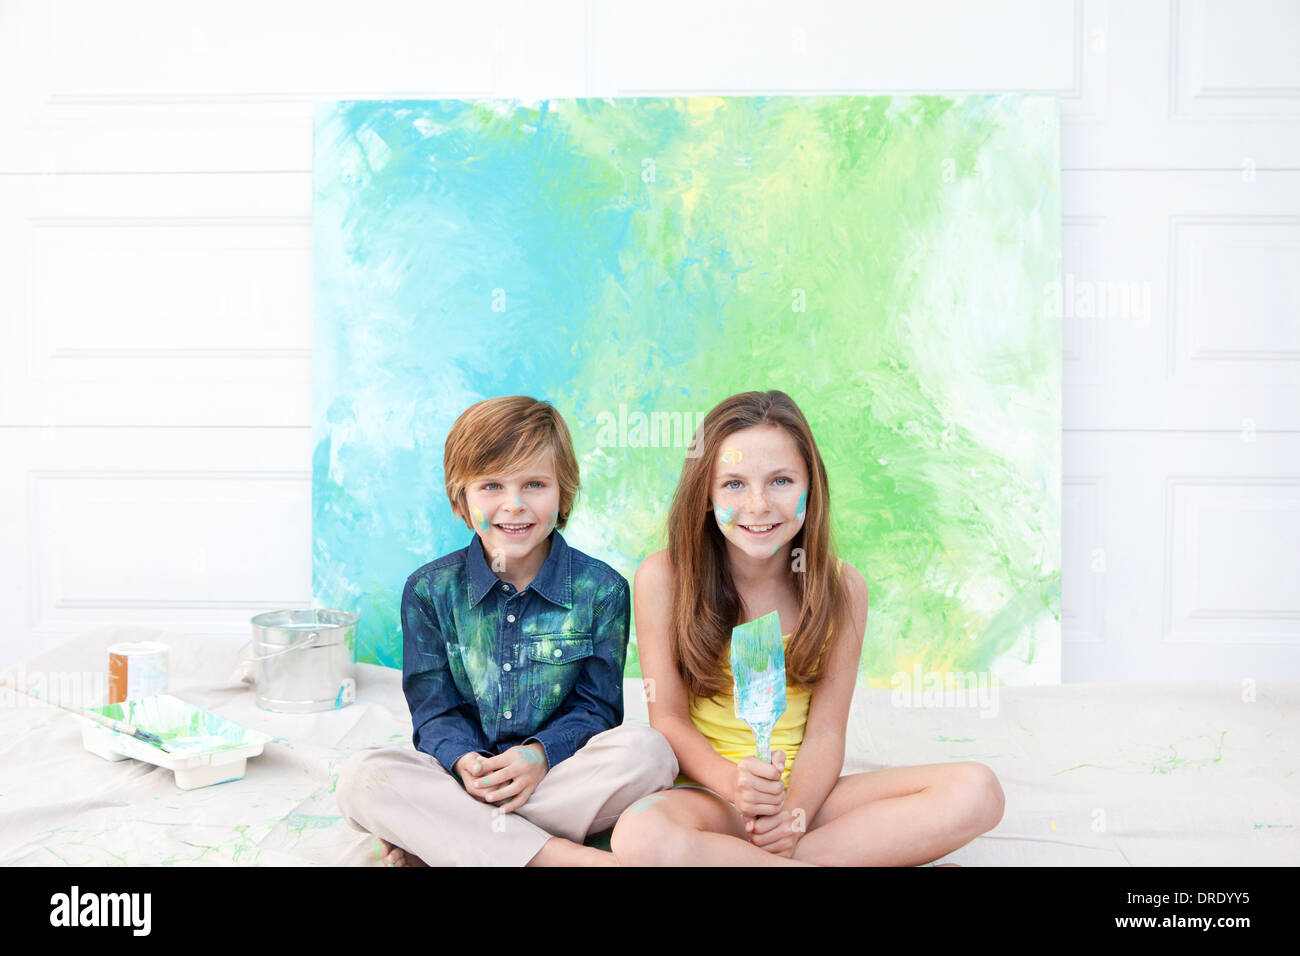 Brother and sister sitting in front of colorful painting - Stock Image